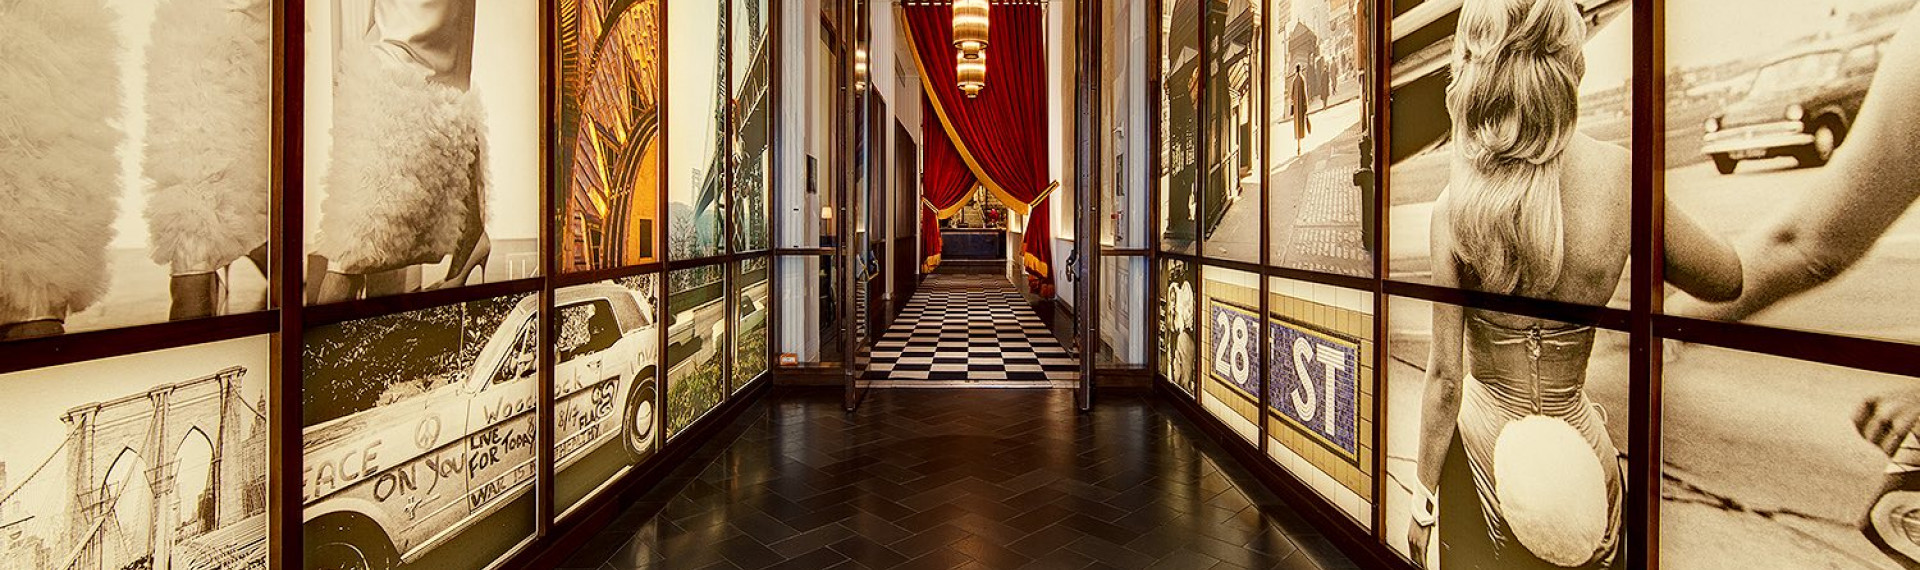 a hallway with large murals on the walls and double glass doors leading to a black and white checkered floor with two large red curtains gathered at the side